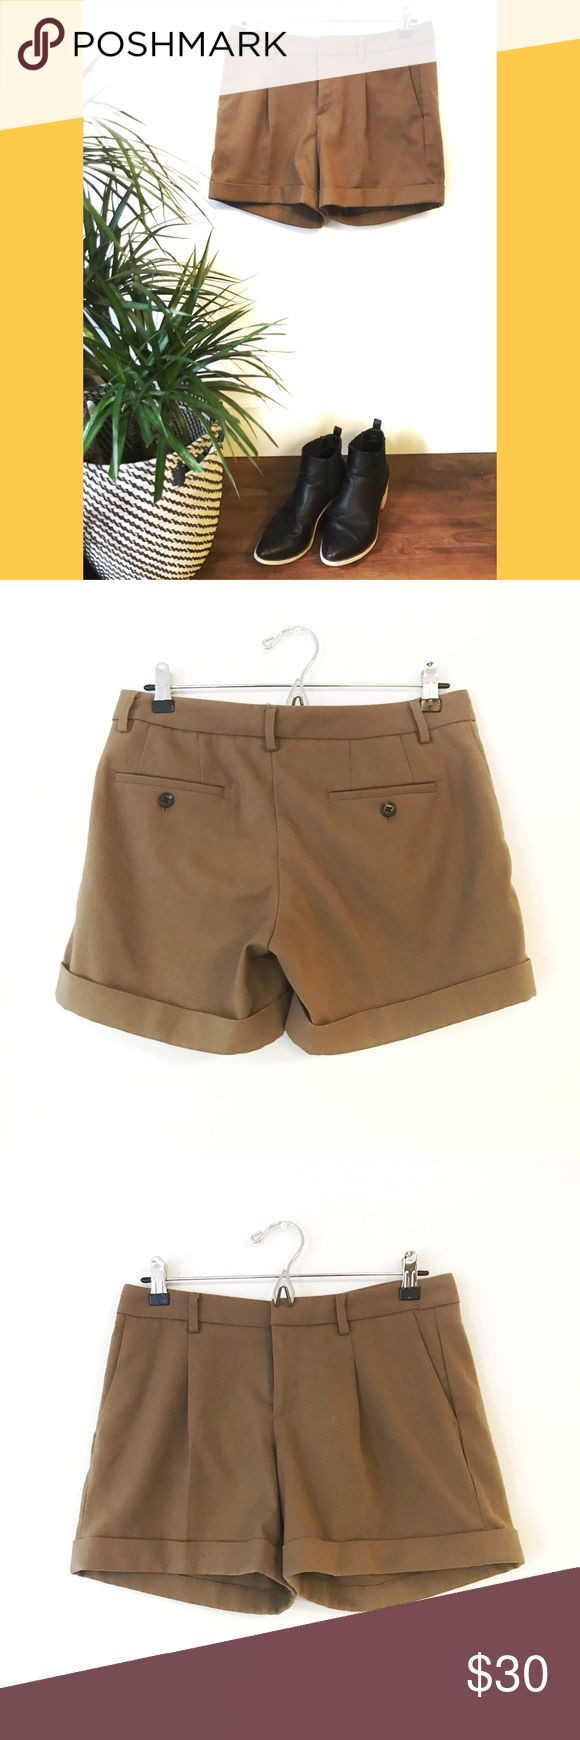 ✨UNIQLO Camel Shorts✨ Size M for Women. Waist 64cm (25in) Hip91cm (36in). Clean as brand new. No sign of wear or use. Very decent material. Uniqlo Shorts